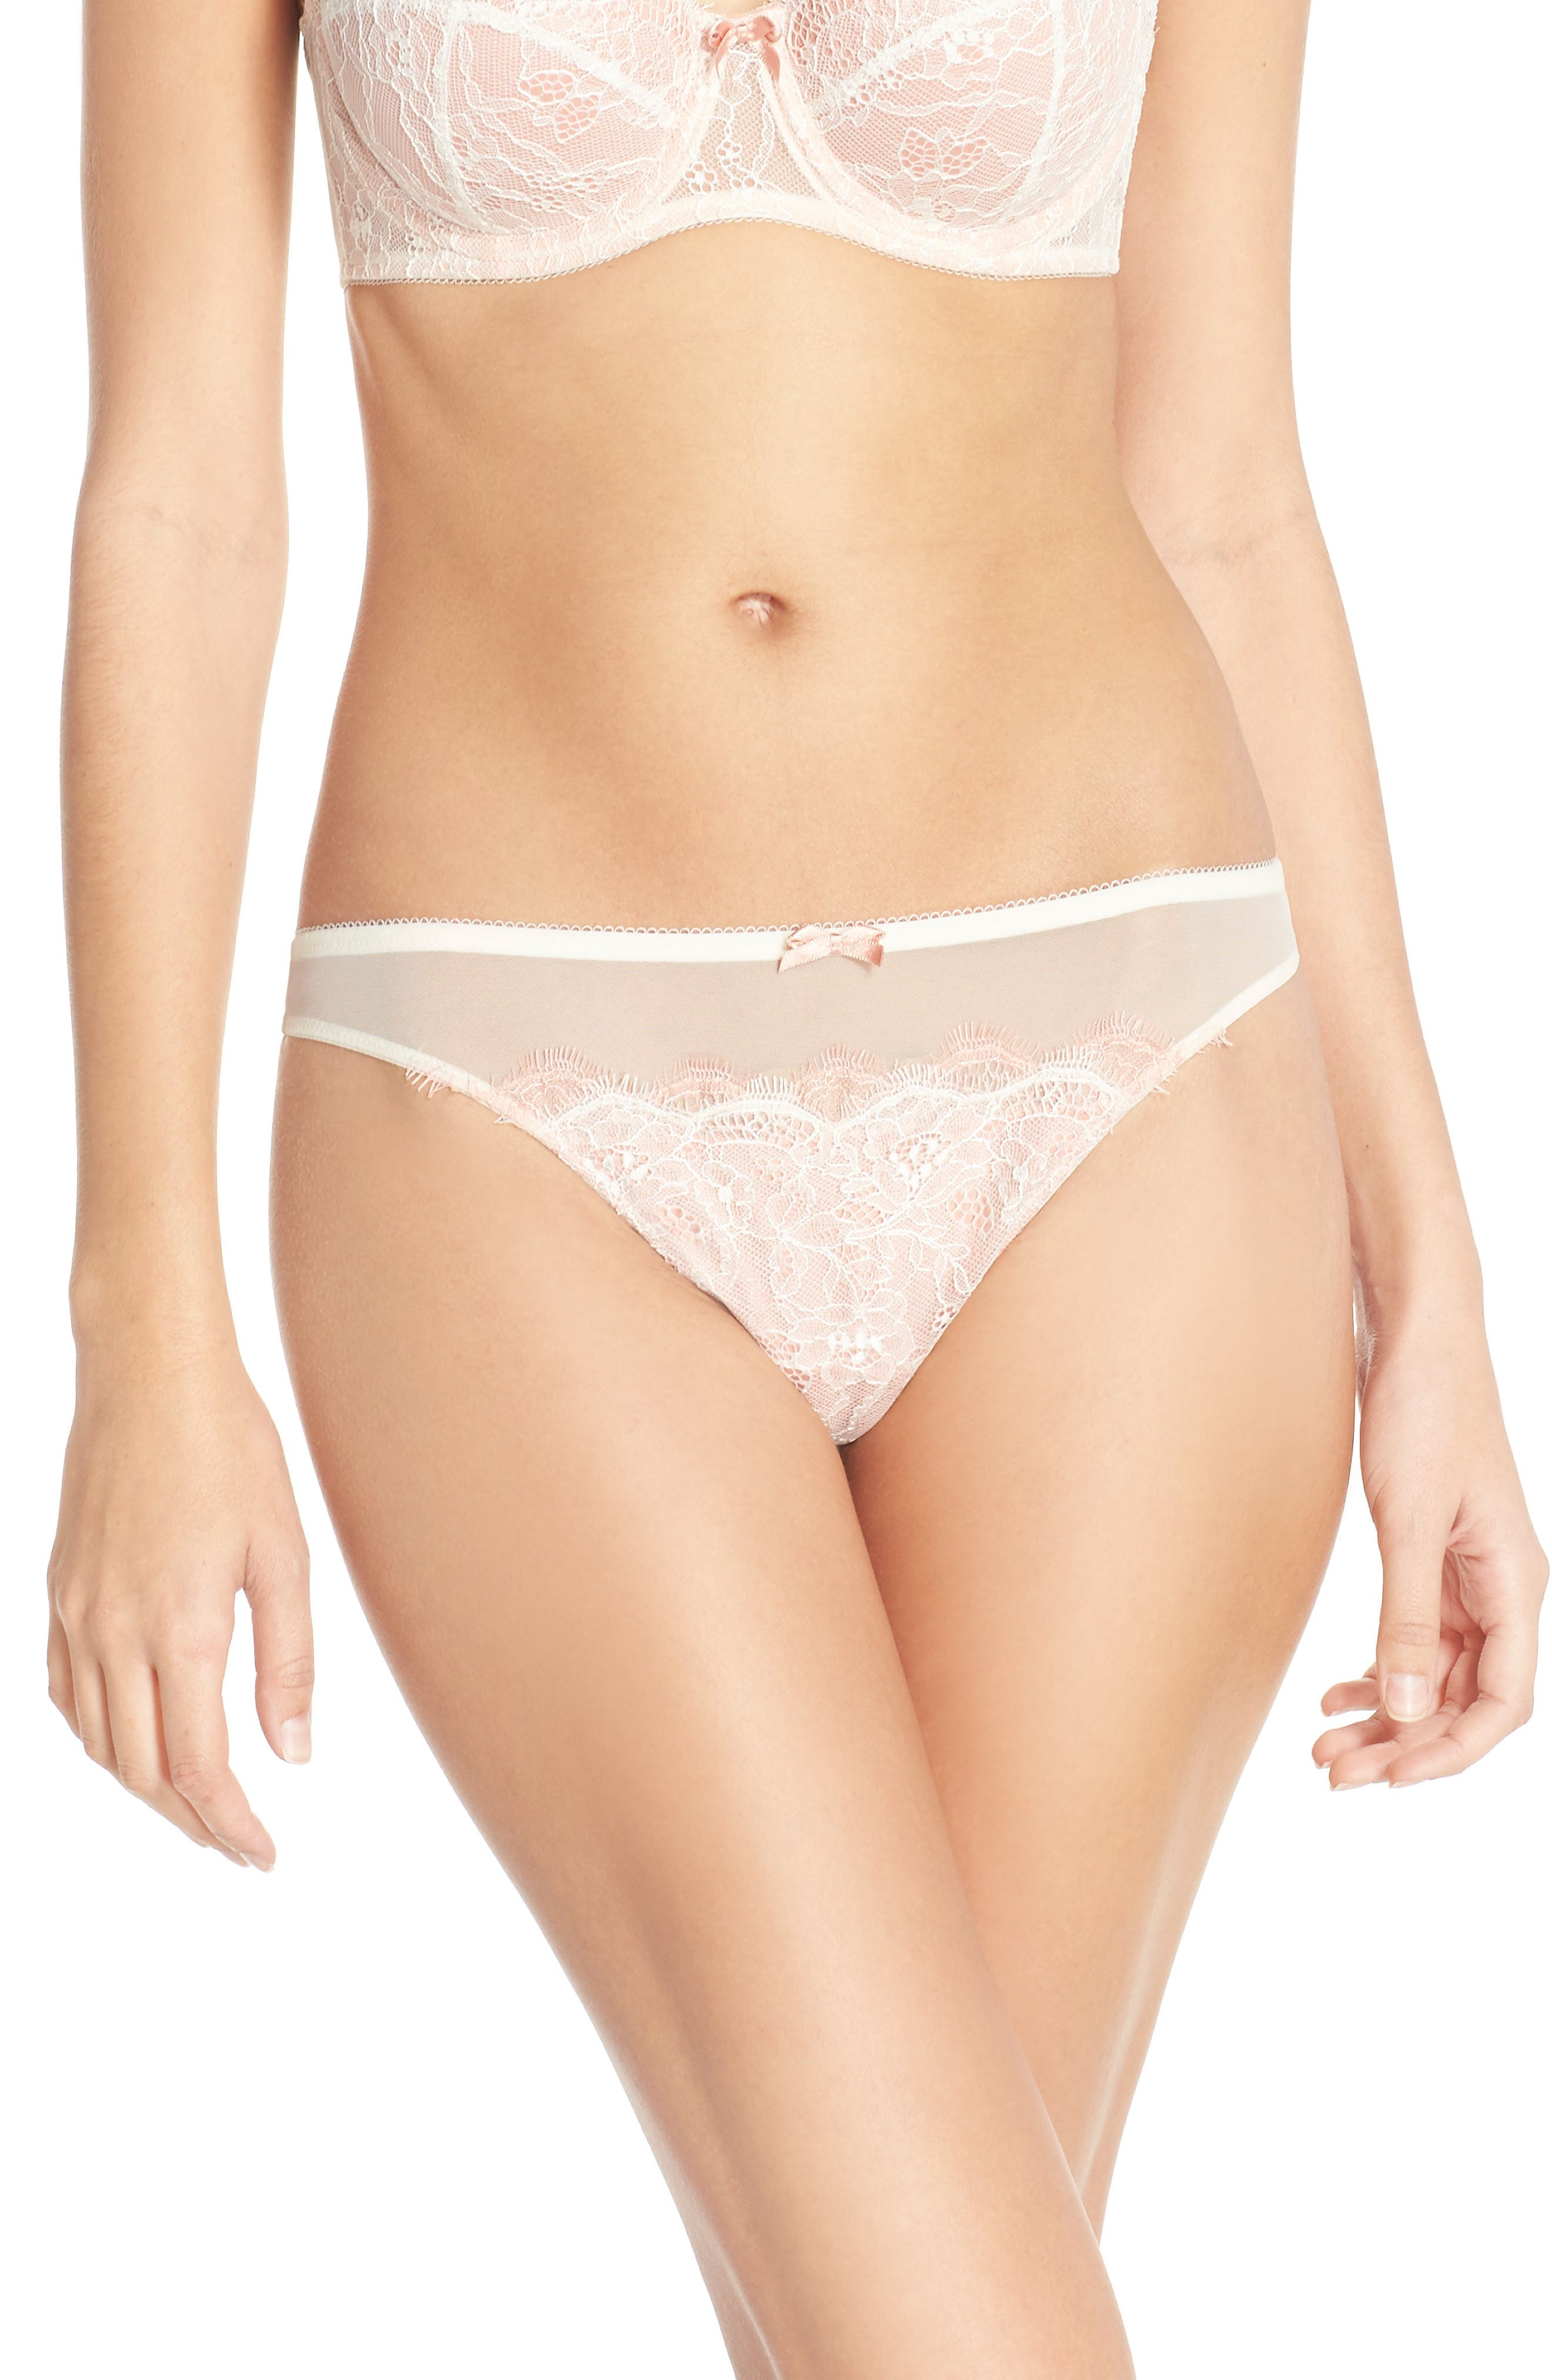 'b.sultry' Lace Front Thong,                             Alternate thumbnail 3, color,                             VANILLA ICE/ PEACH BEIGE